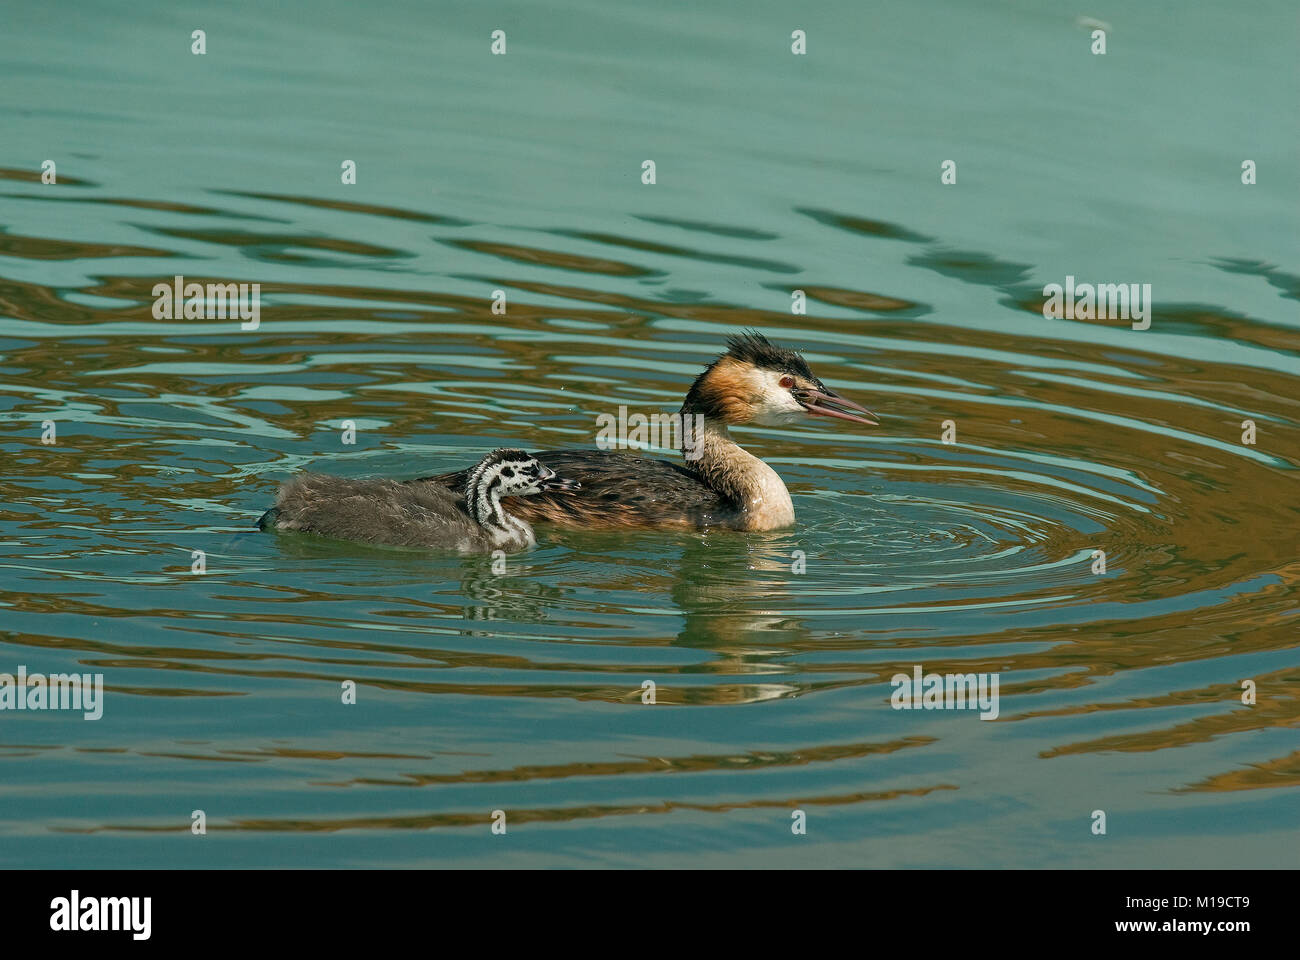 Great crested grebe (Podiceps cristatus) with her young, Lake Trasimeno, Umbria, Italy - Stock Image